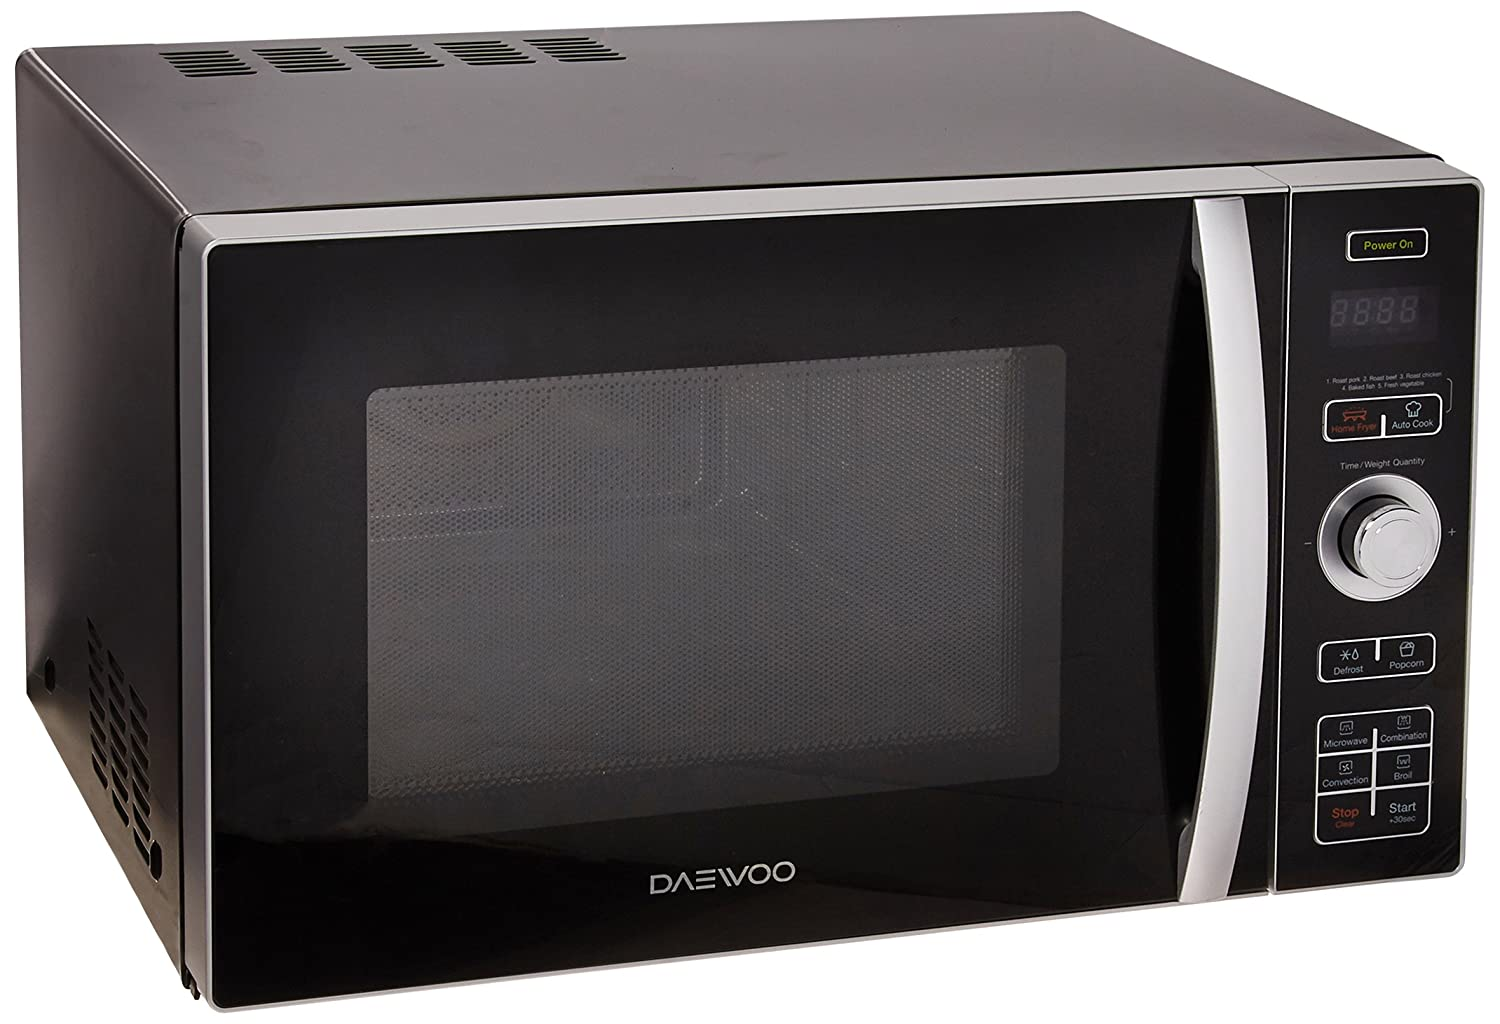 Daewoo KOC-9HAFDB Convection Air Fryer Microwave Oven 0.9 Cu. Ft., 900W | Black